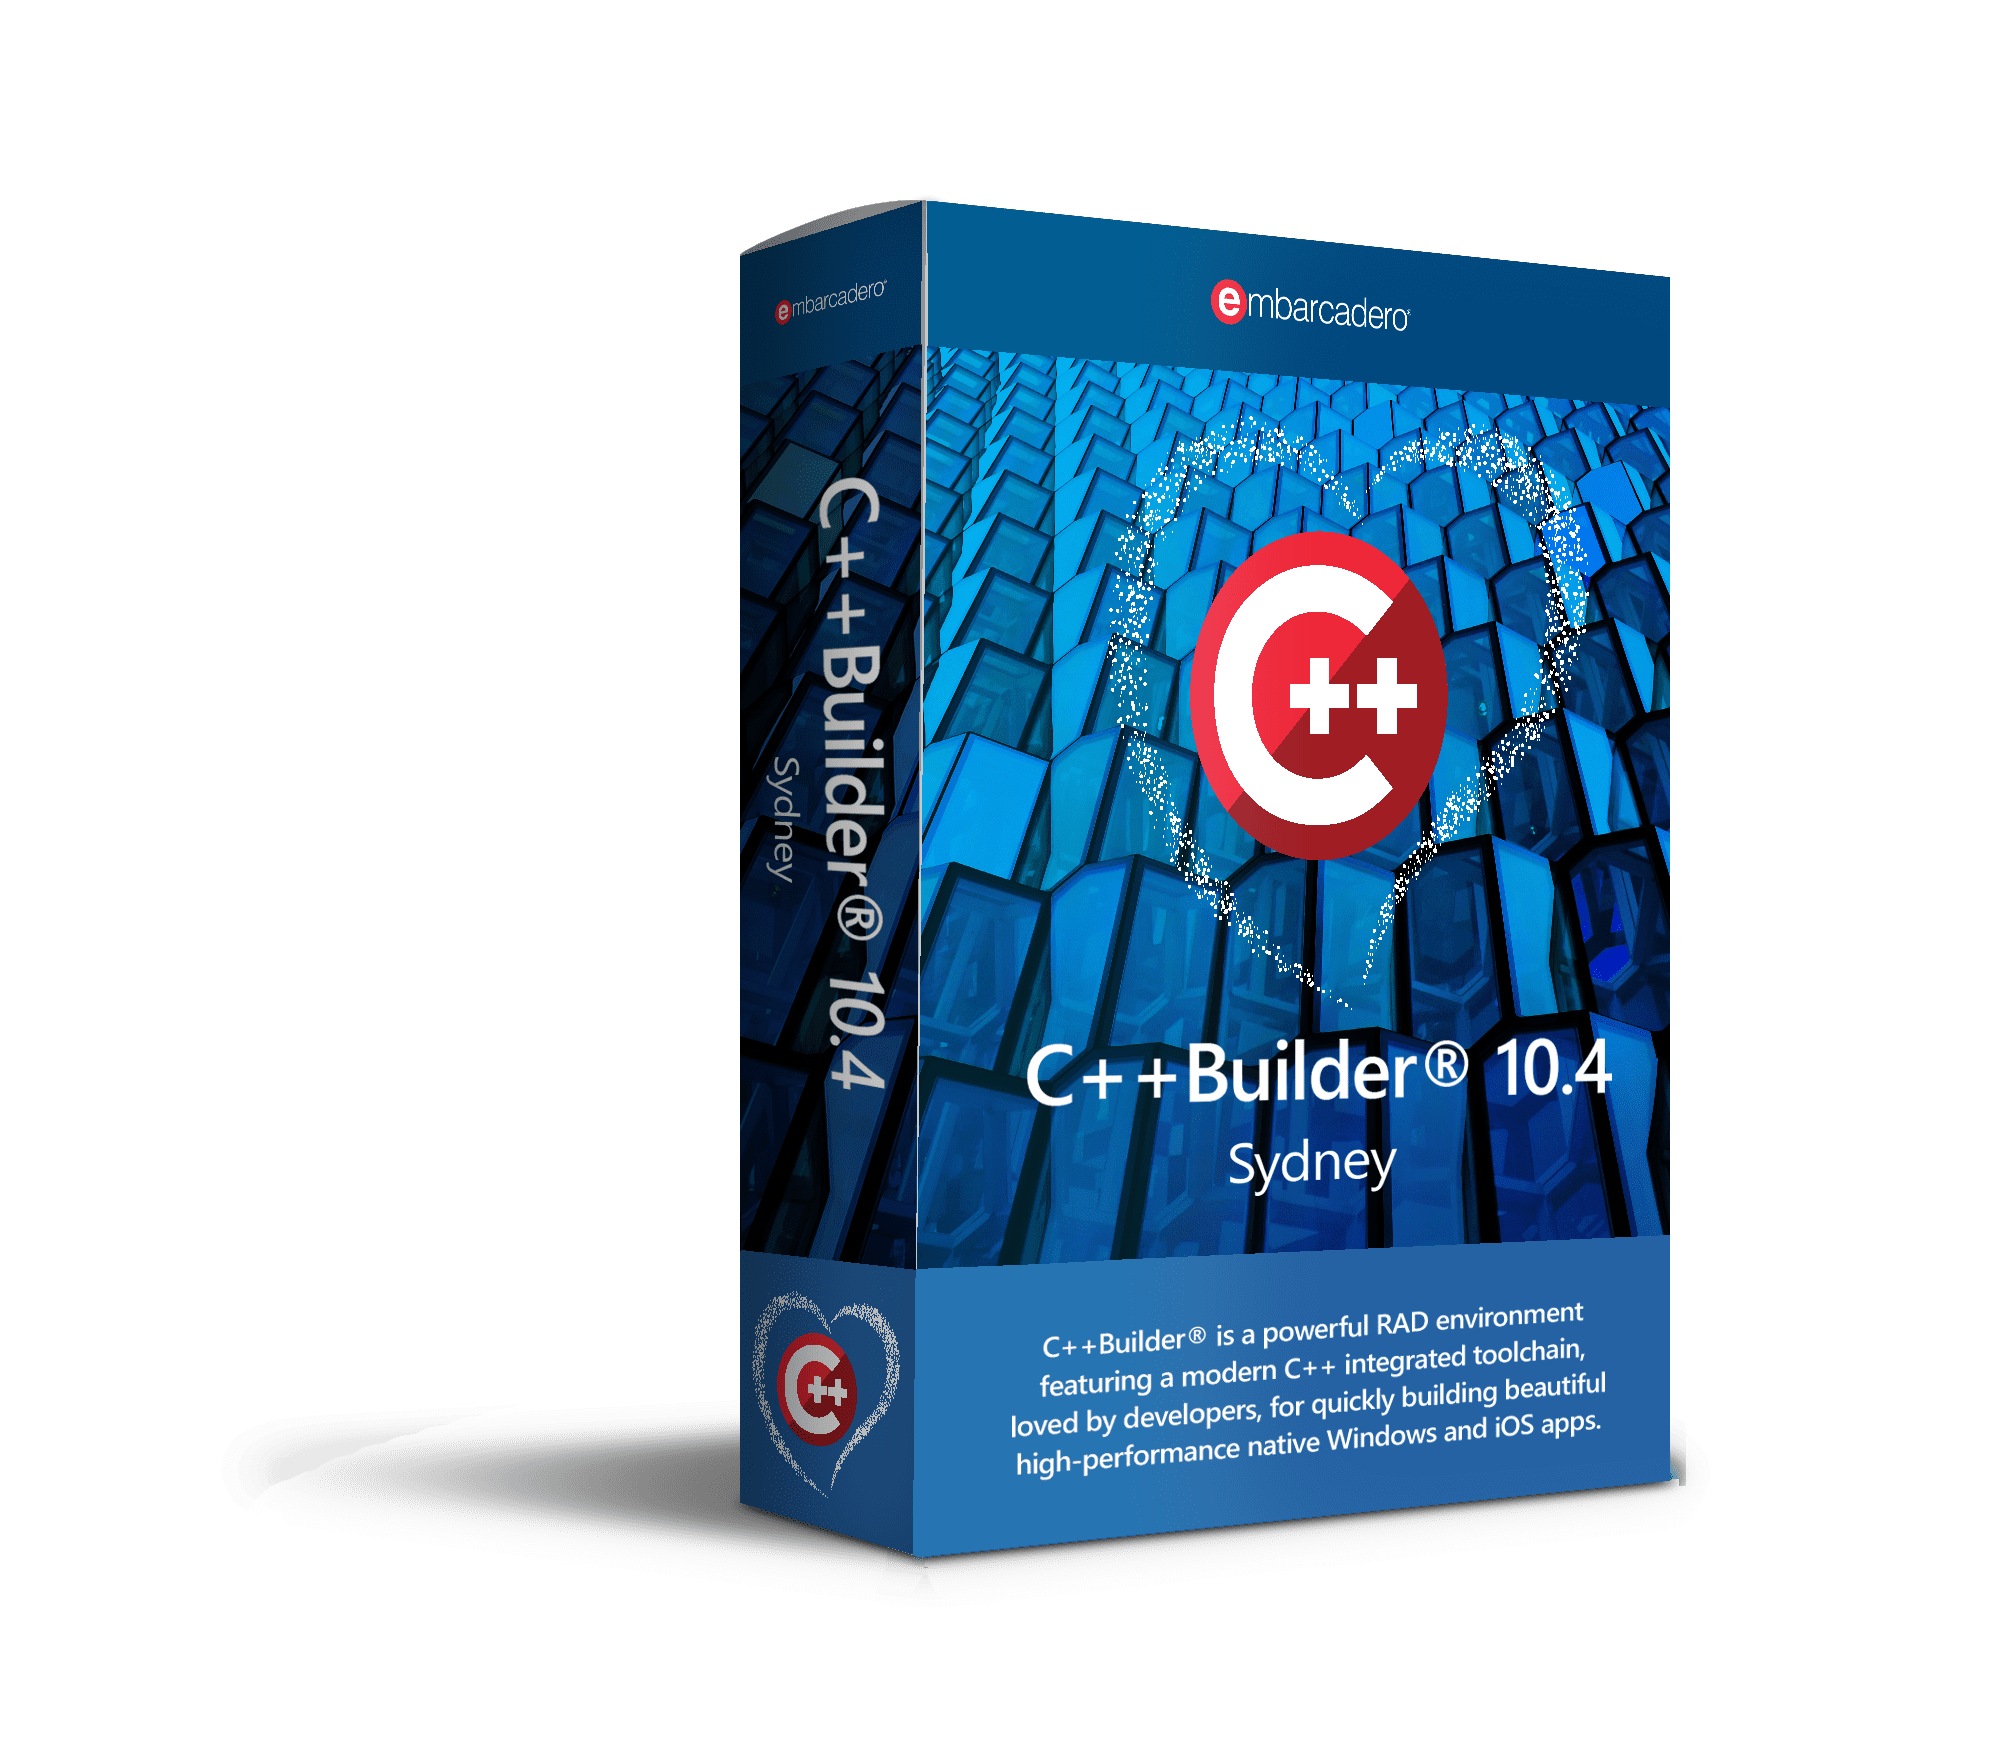 cbuilder10.4 box mock up